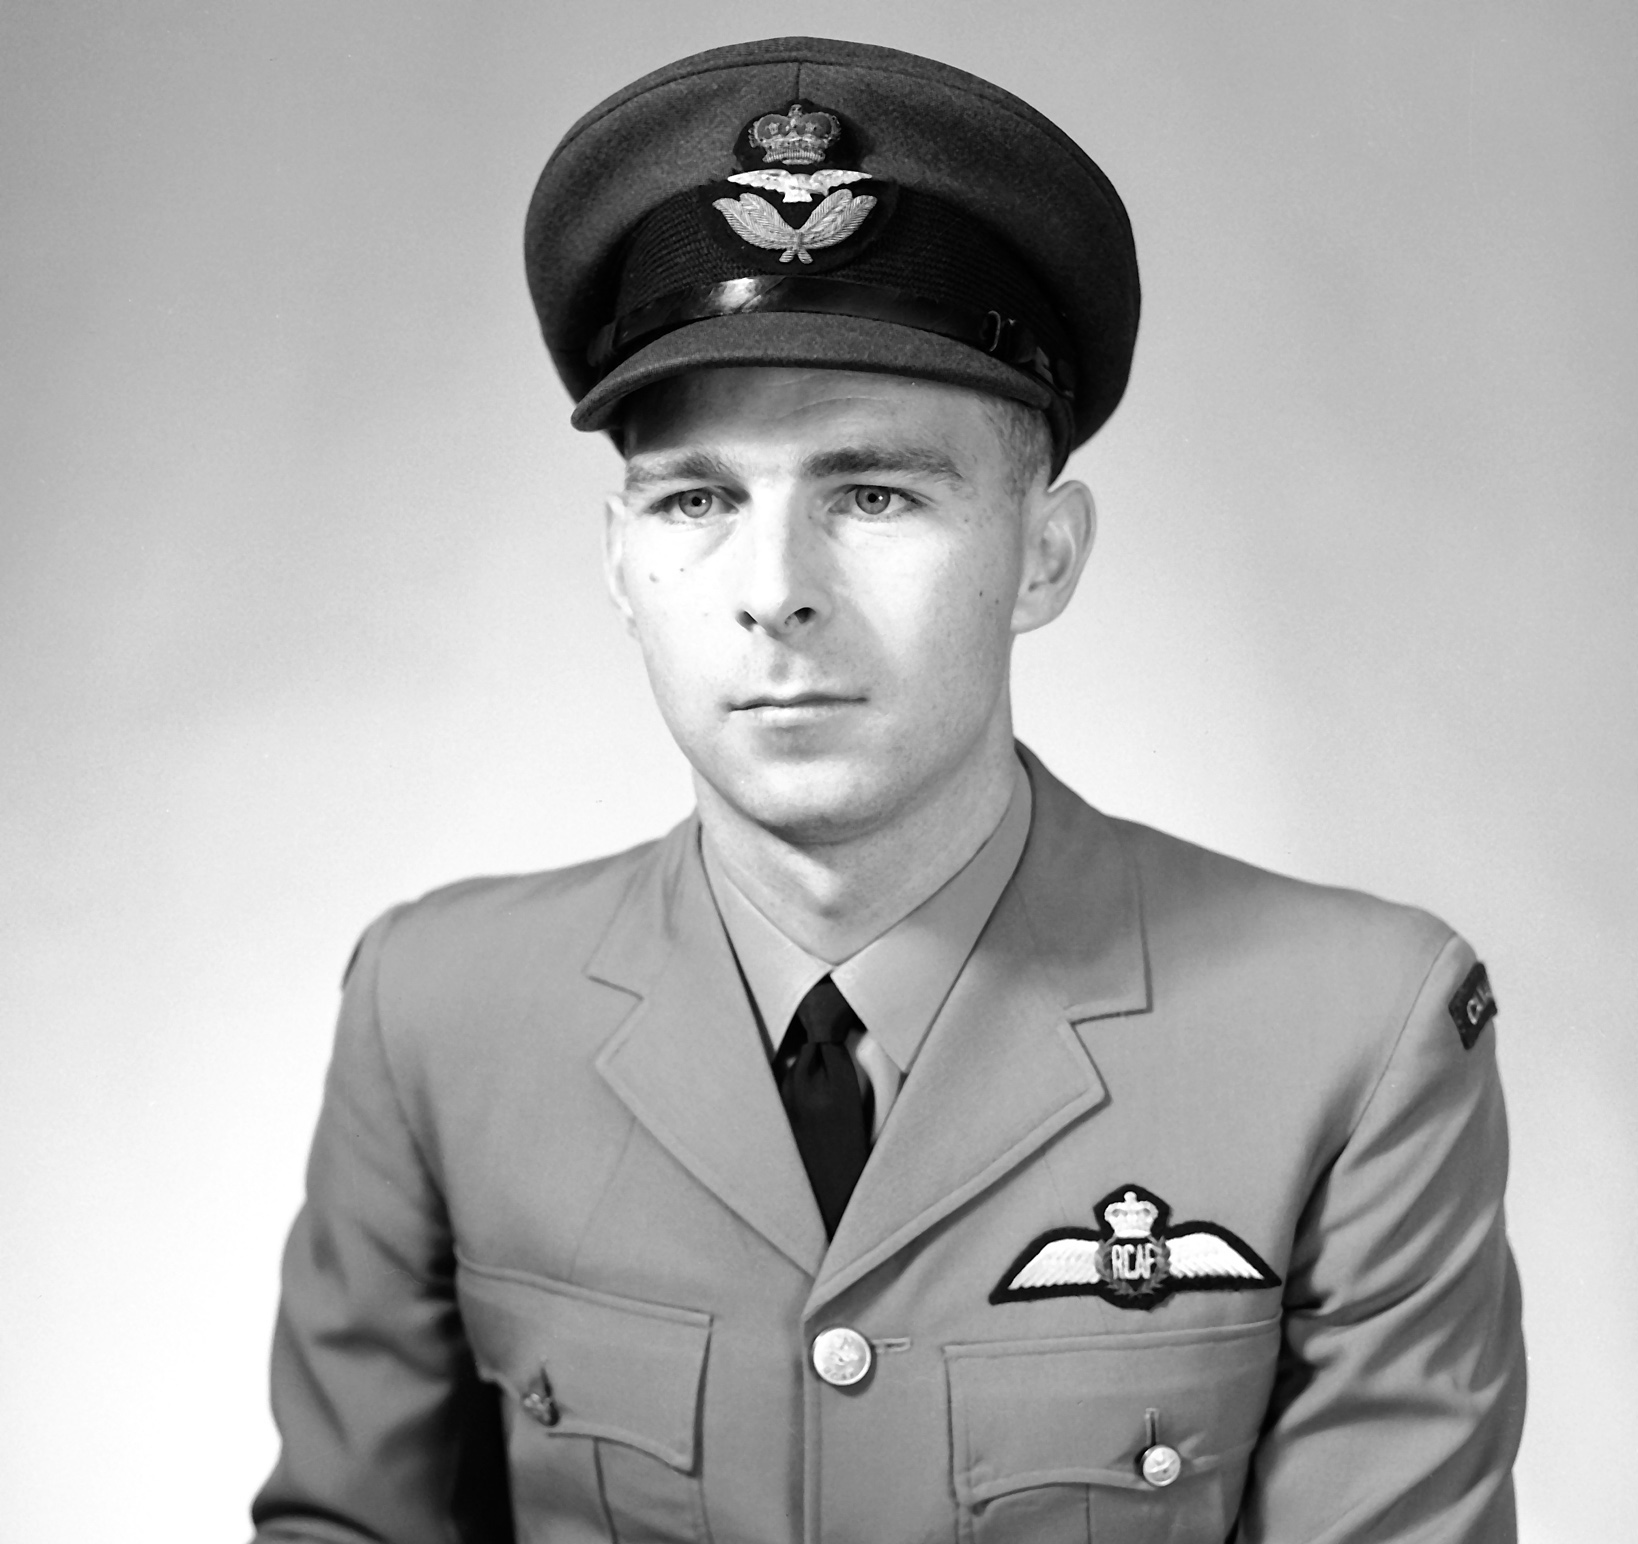 A man wearing a military uniform.